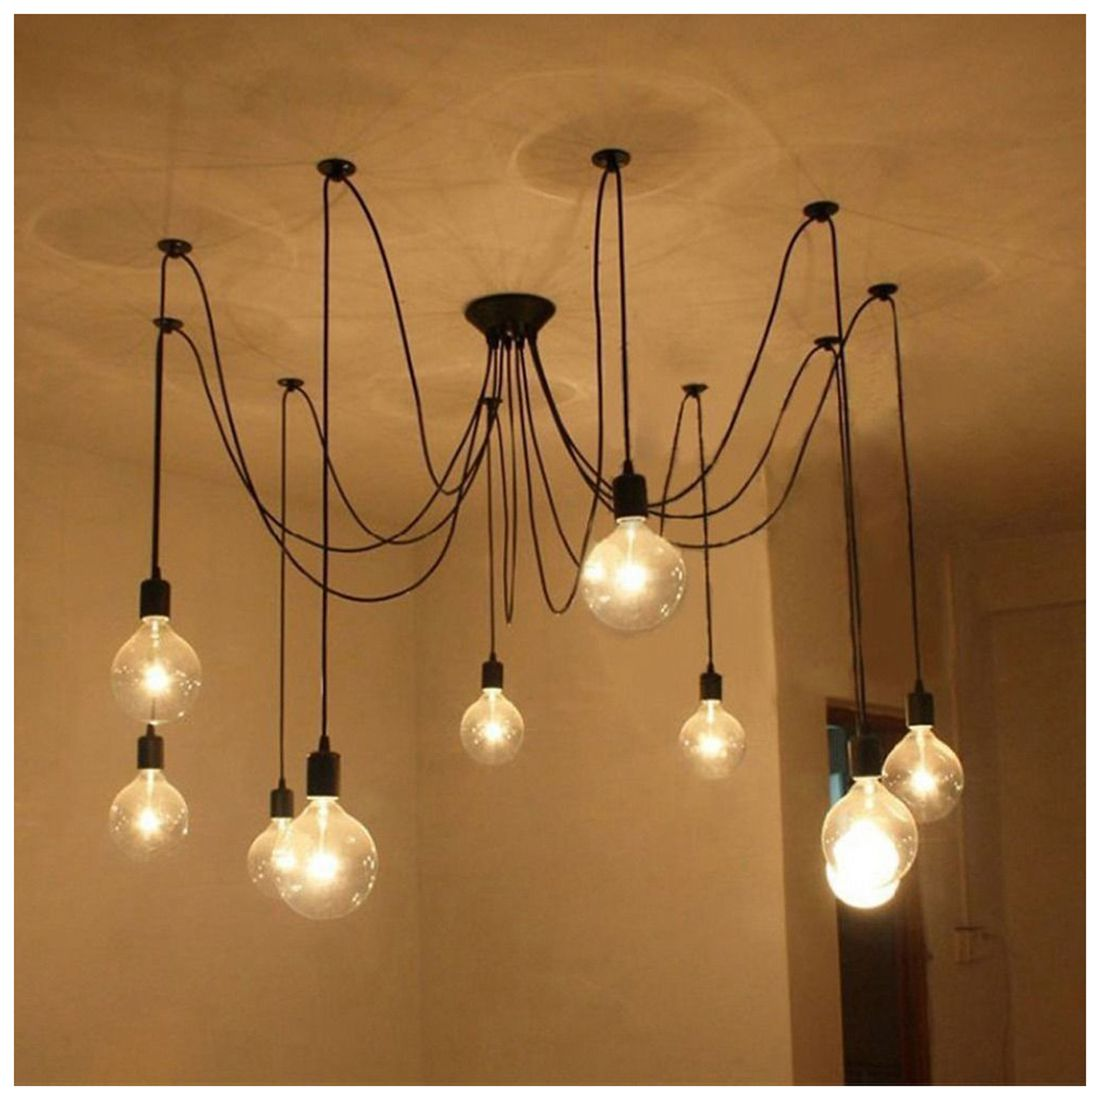 9 Lights E27 DIY Ceiling Spider Pendant Lamp Shade Light Antique Classic Adjustable Retro Chandelier Dining Hall Bedroom hemp rope chandelier antique classic adjustable diy ceiling spider lamp light retro edison bulb pedant lamp for home